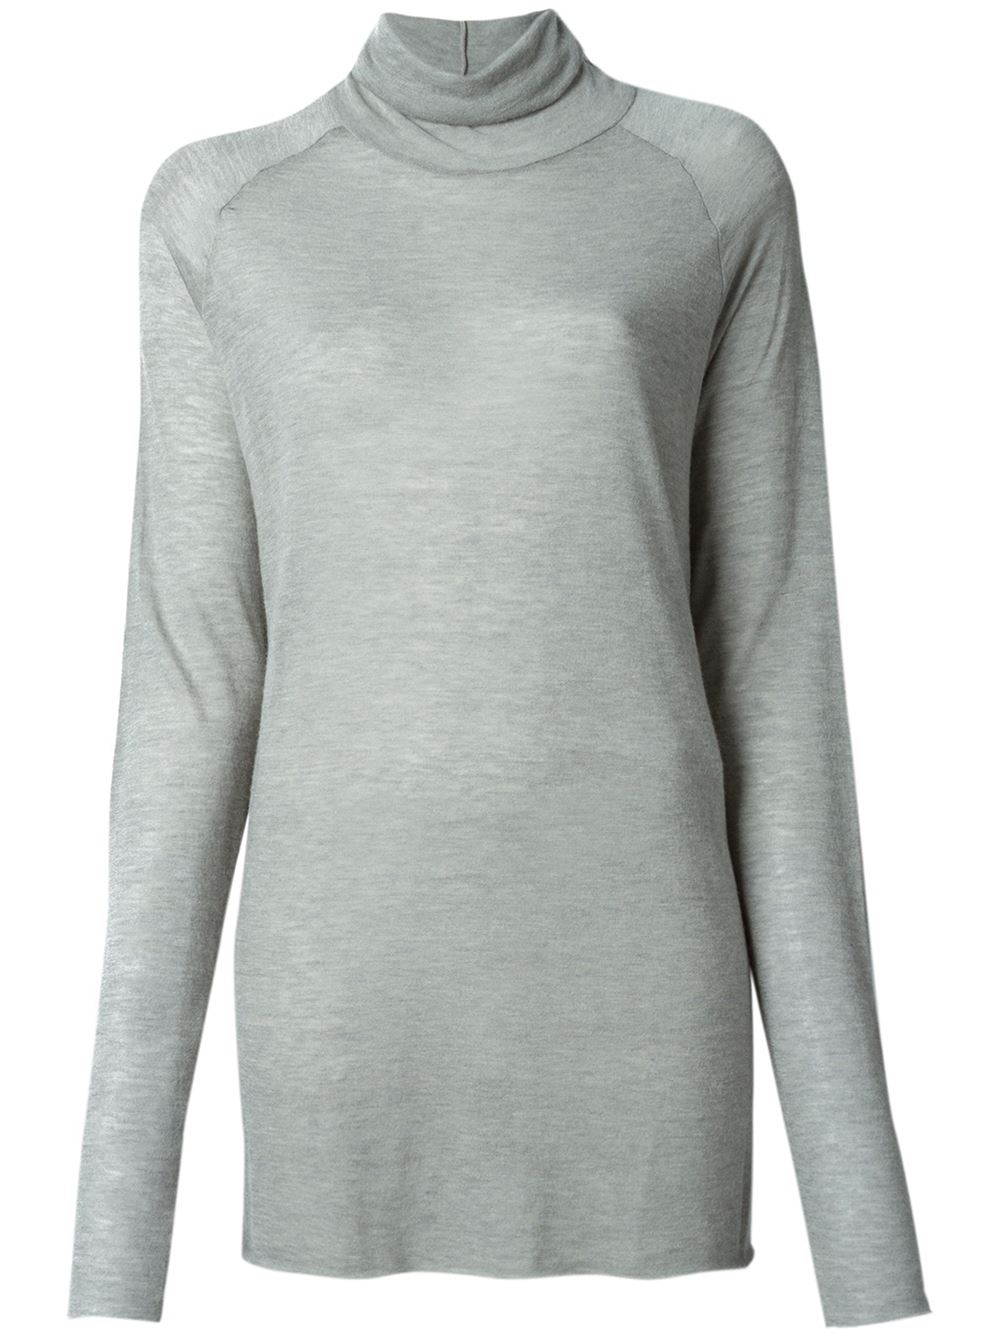 haider ackermann loose fit turtle neck sweater in gray lyst. Black Bedroom Furniture Sets. Home Design Ideas